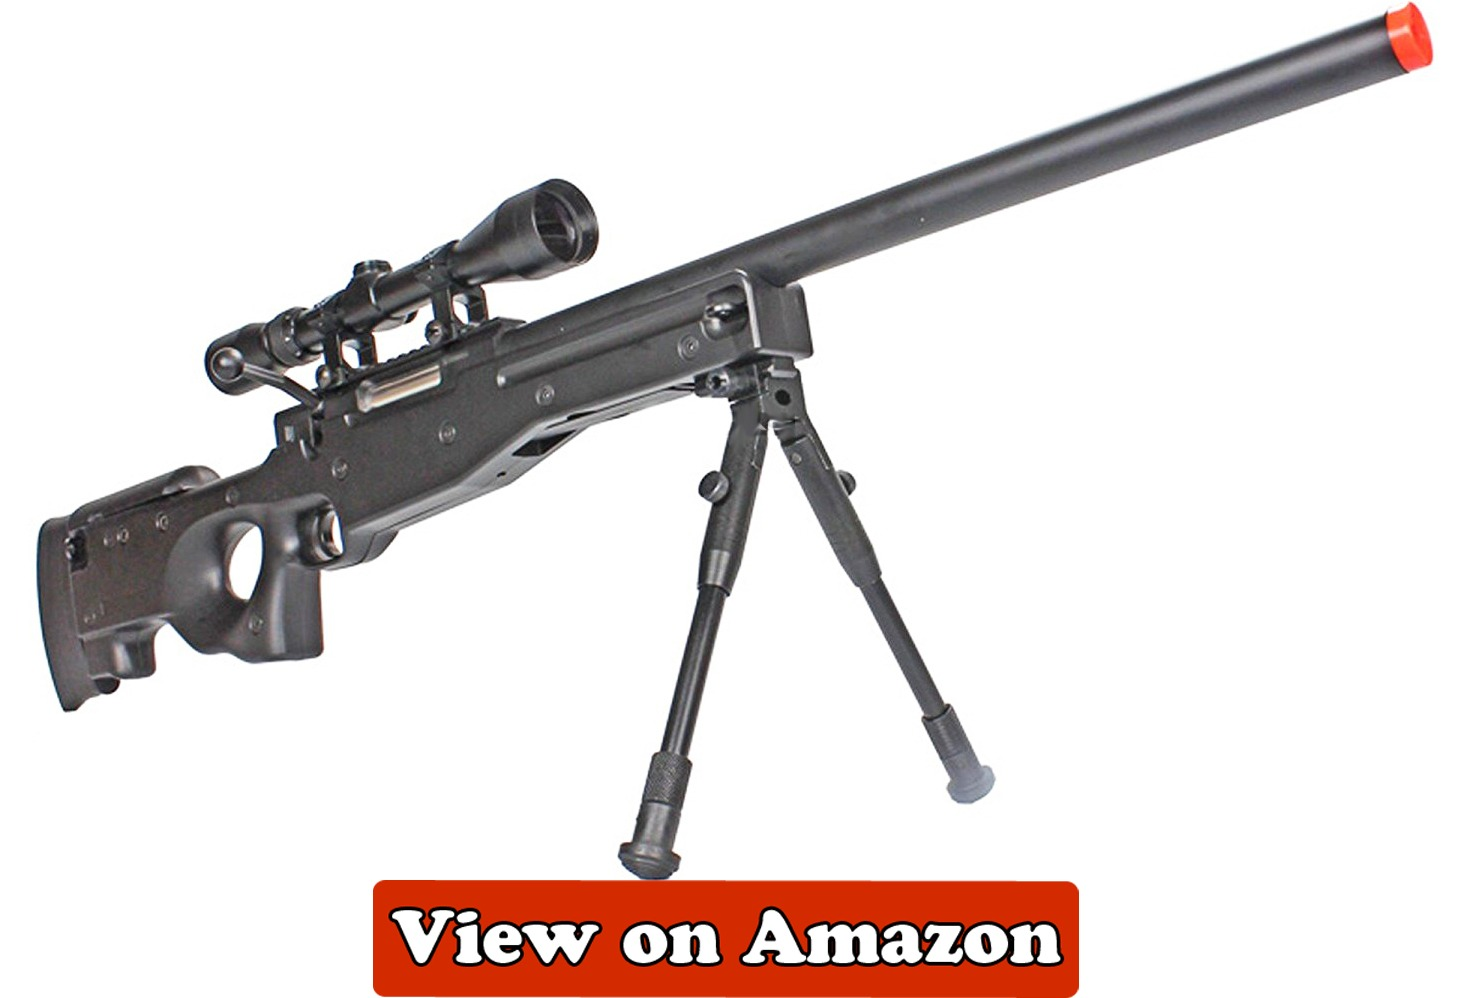 BBTAC BT59 Airsoft Sniper Rifle Bolt Action